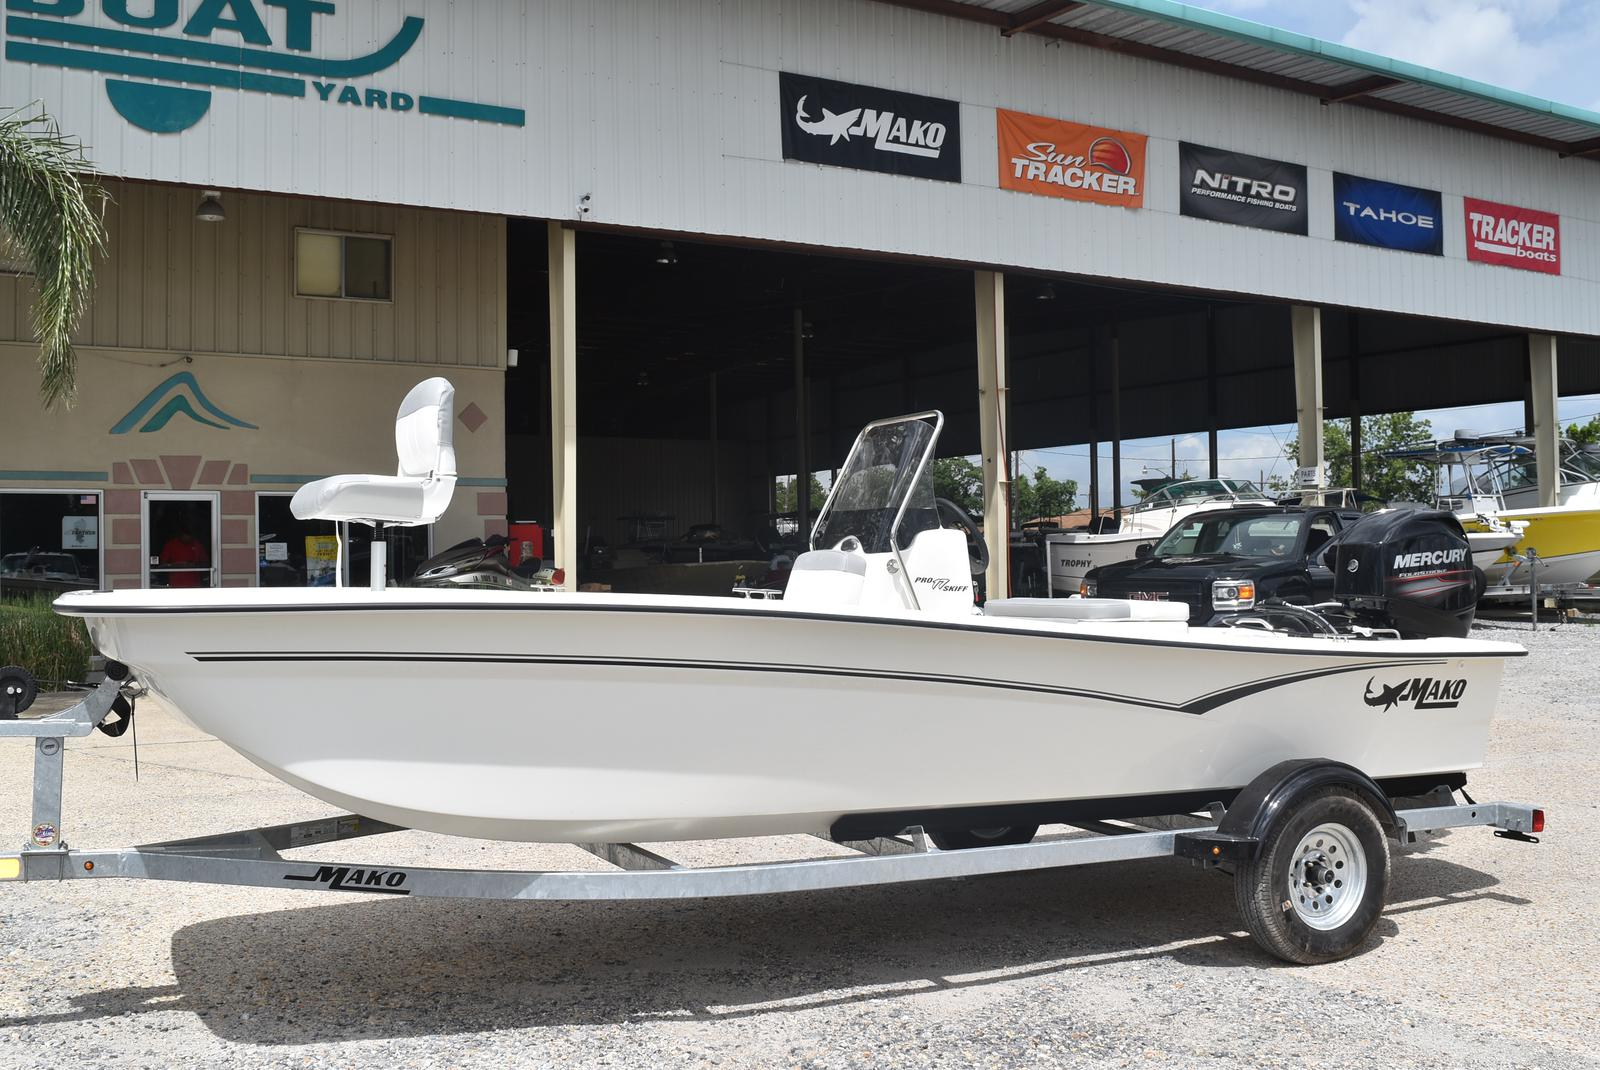 2020 Mako boat for sale, model of the boat is Pro Skiff 17, 75 ELPT & Image # 87 of 702